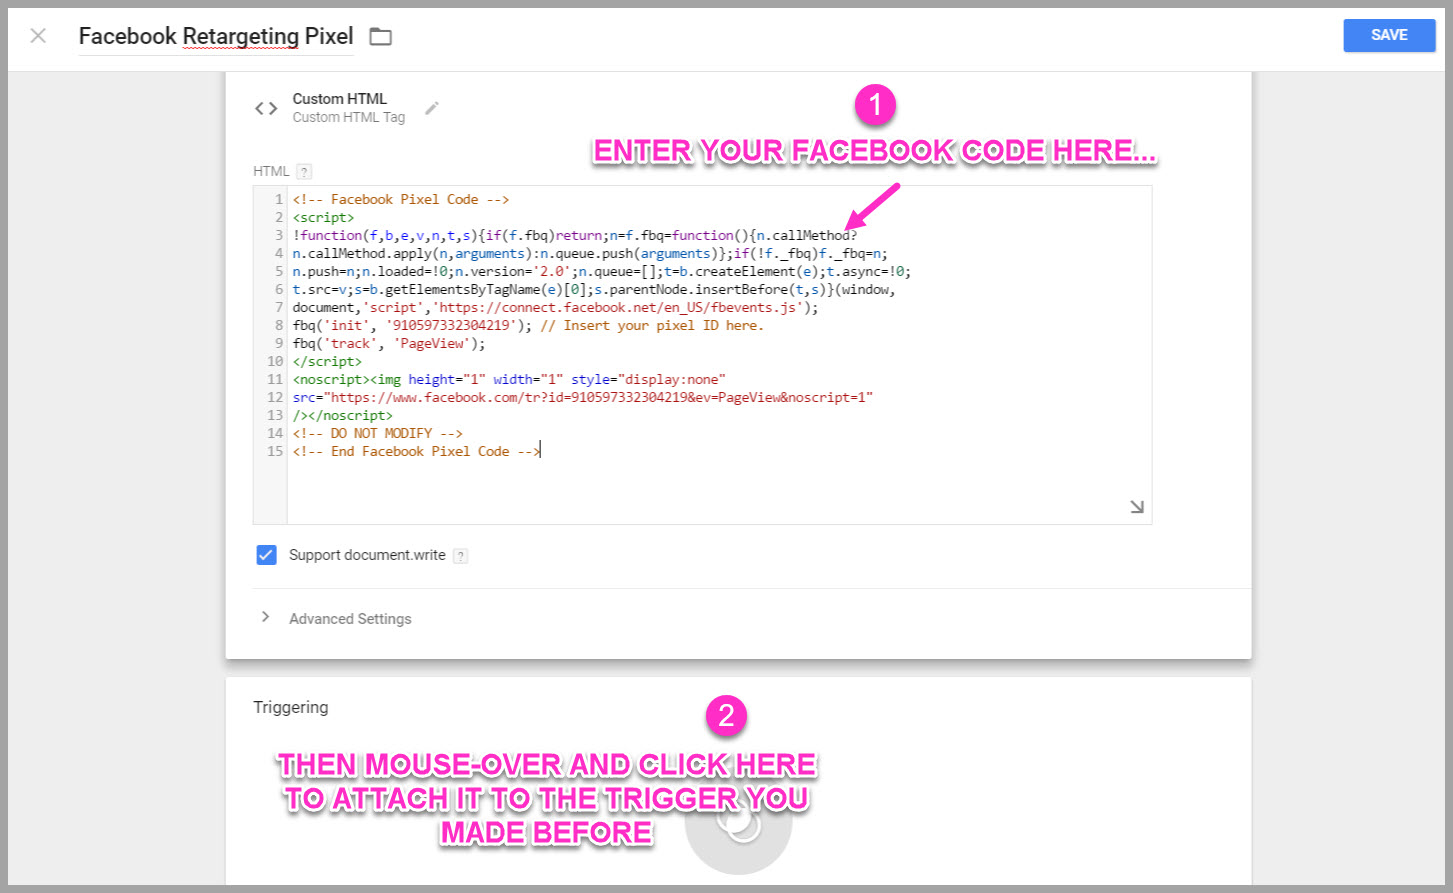 Paste the facebook pixel code you just saved into the top box section